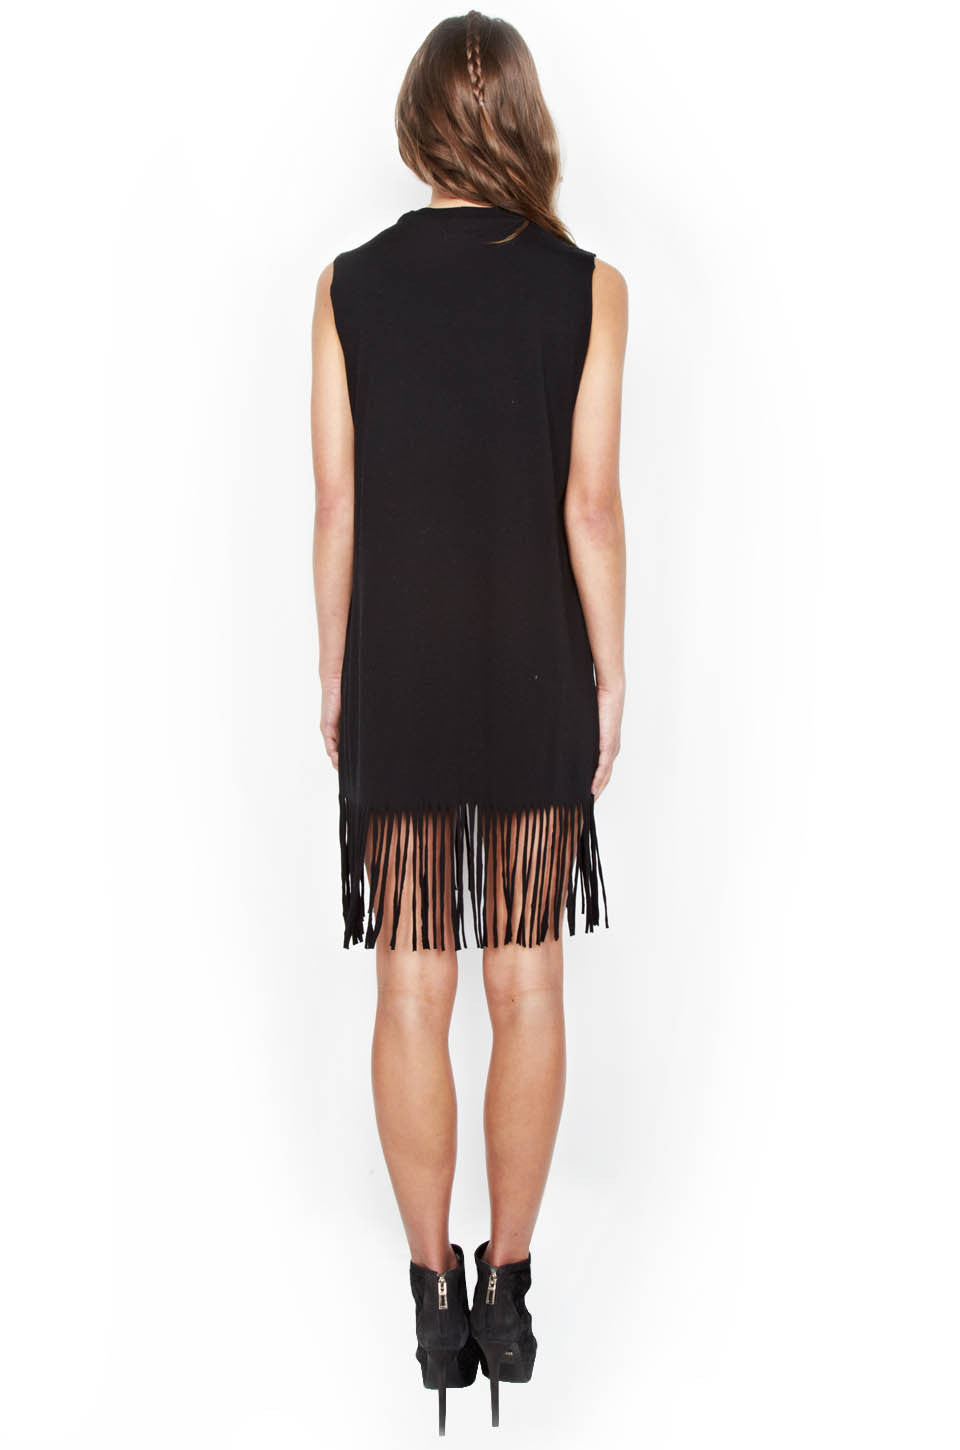 Gin Ombre Star Sleeveless Fringe Dress - Lauren Moshi - 3